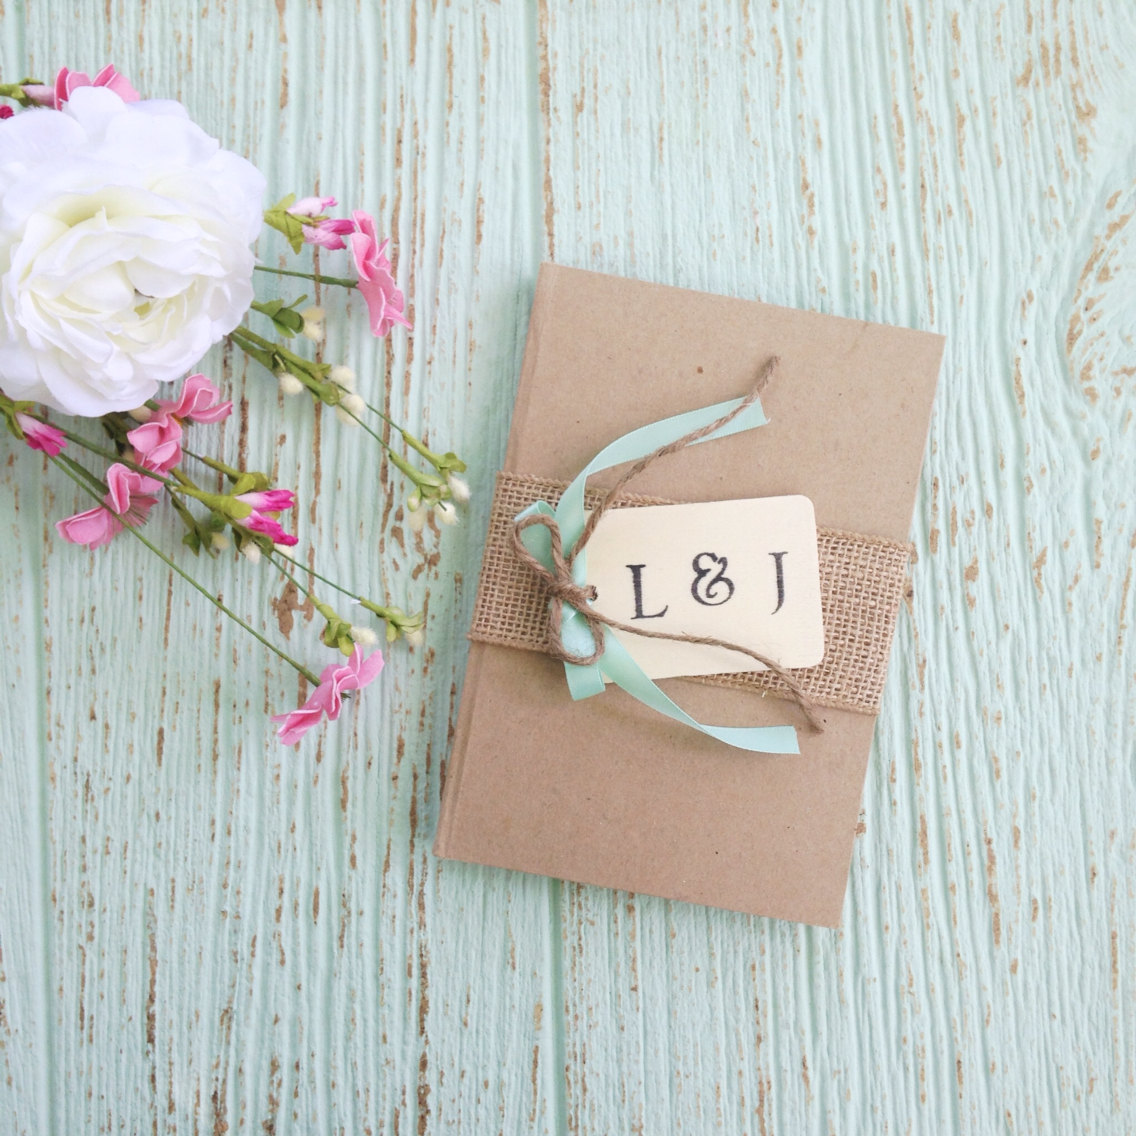 burlap covered guest book | 50 Best Burlap Wedding Ideas | via http://emmalinebride.com/decor/burlap-wedding-ideas/